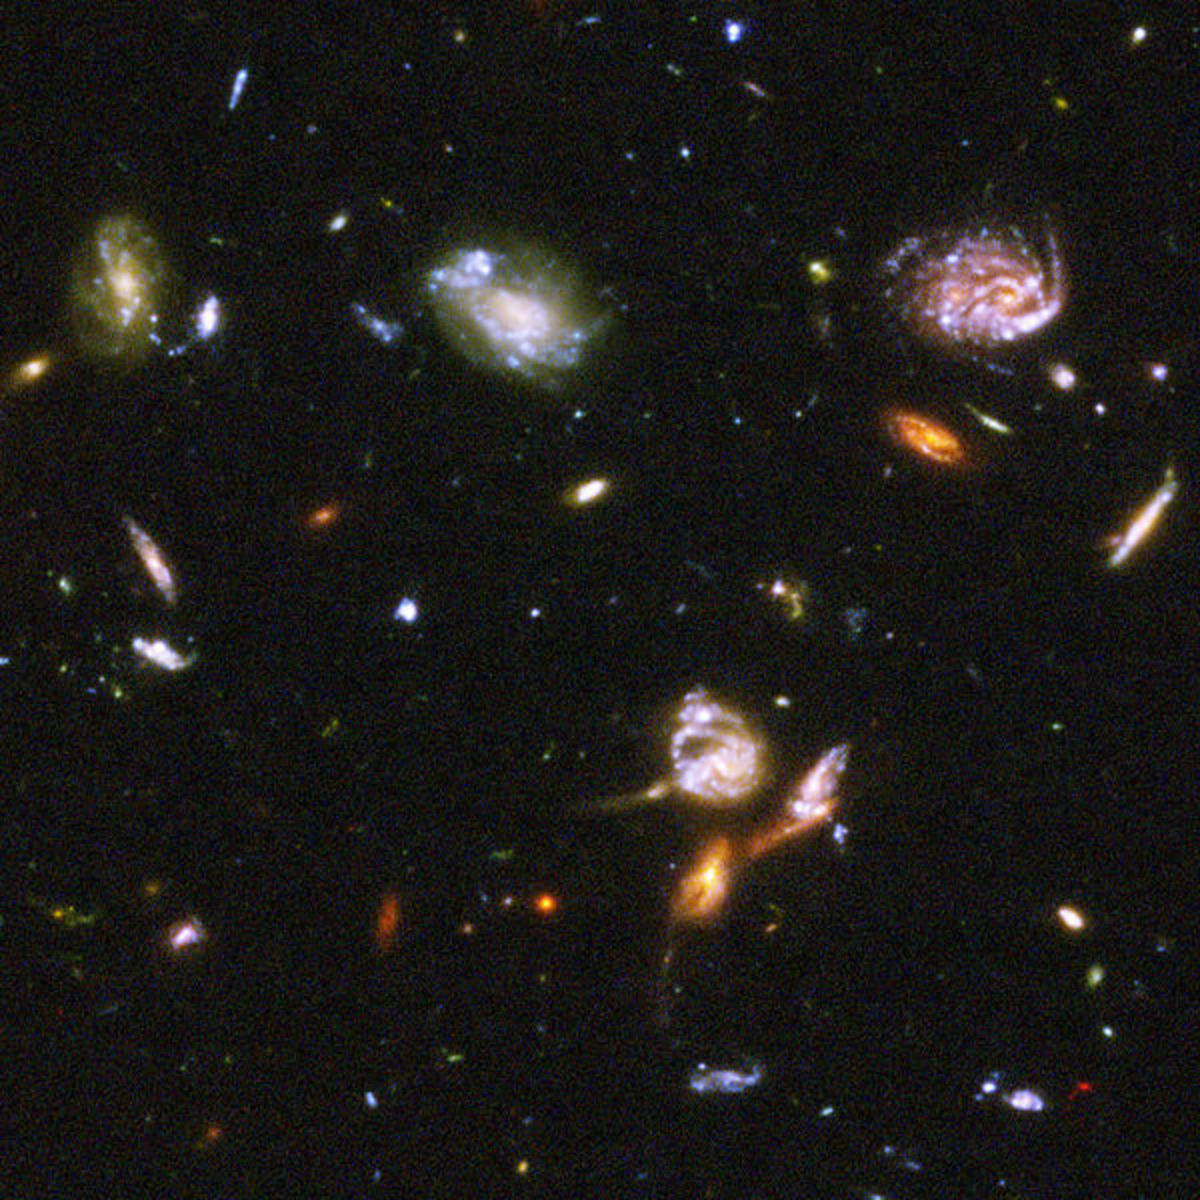 Part of the Hubble Ultra Deep Field. Even the brightest galaxies in this image have an apparent magnitude of 22.  NASA, ESA, S. Beckwith (STScI) and the HUDF Team.